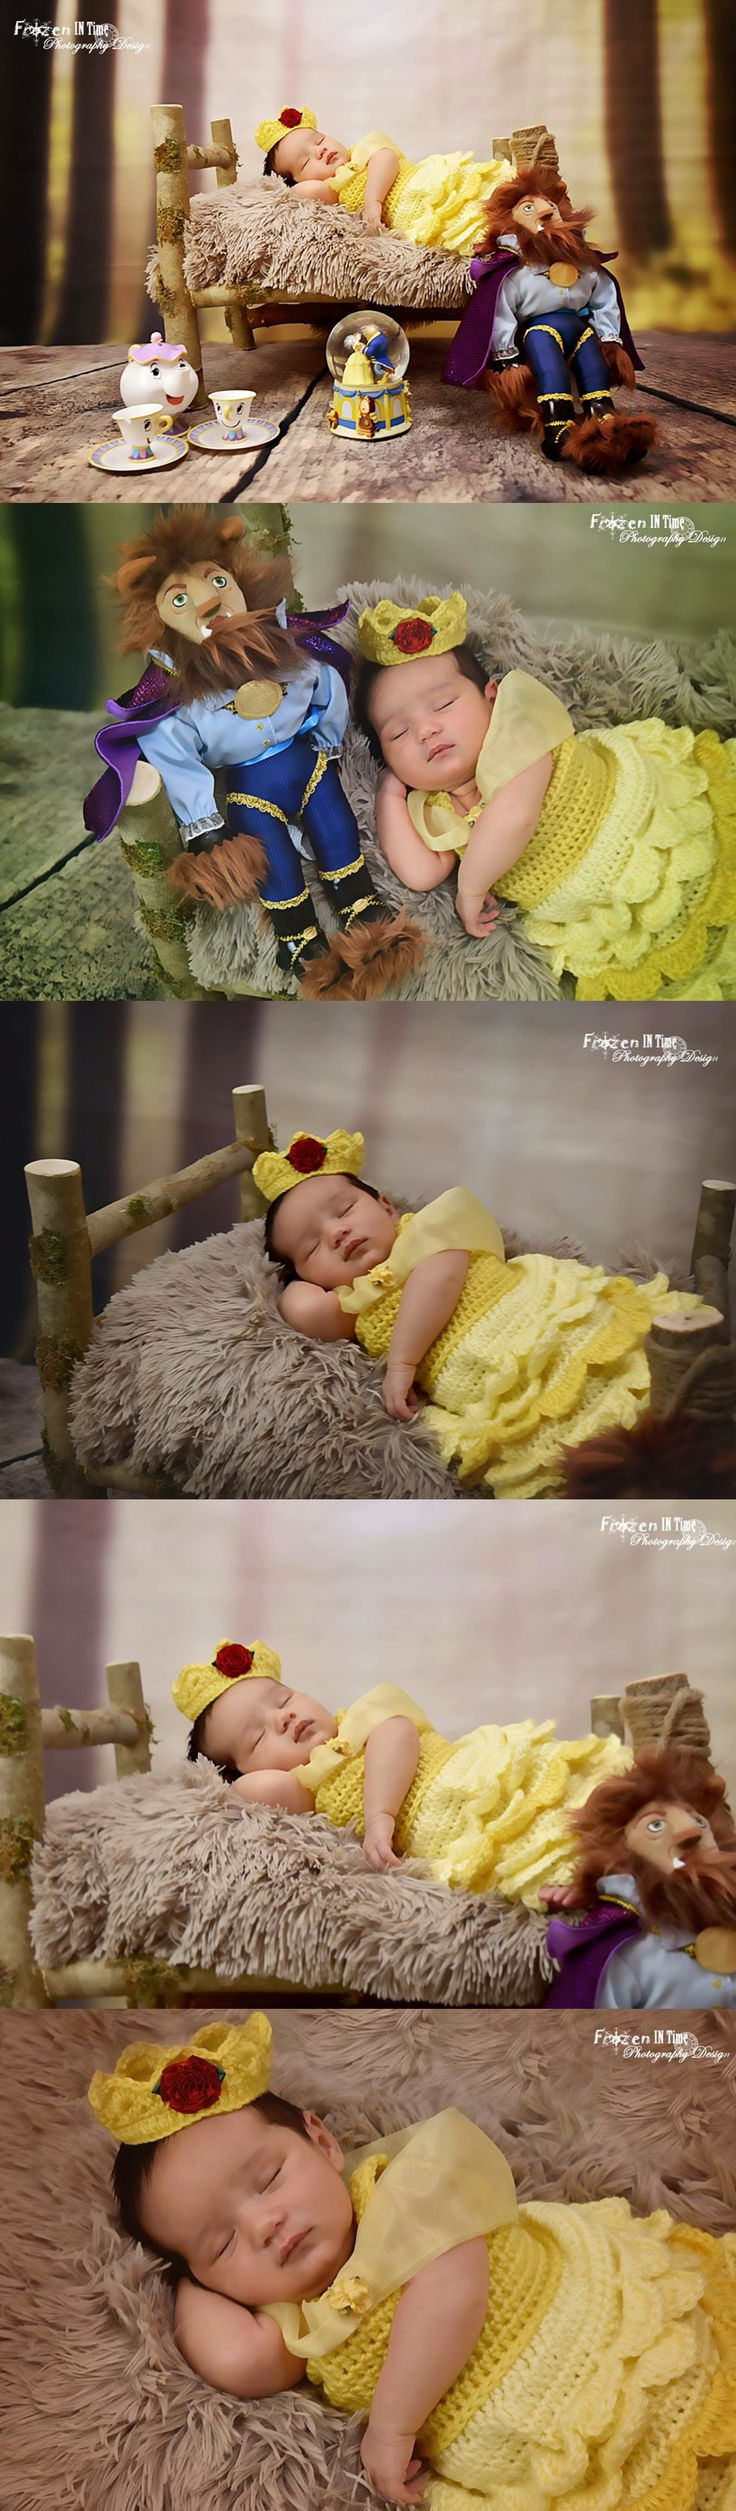 Disney inspired photoshoot, beauty and the beast, belle, Disney princess, Disney newborn shoot, Disney newborn photography, Baby Disney, Baby Belle, photo session, frozen In time photography design, frozenintimephotographydesign